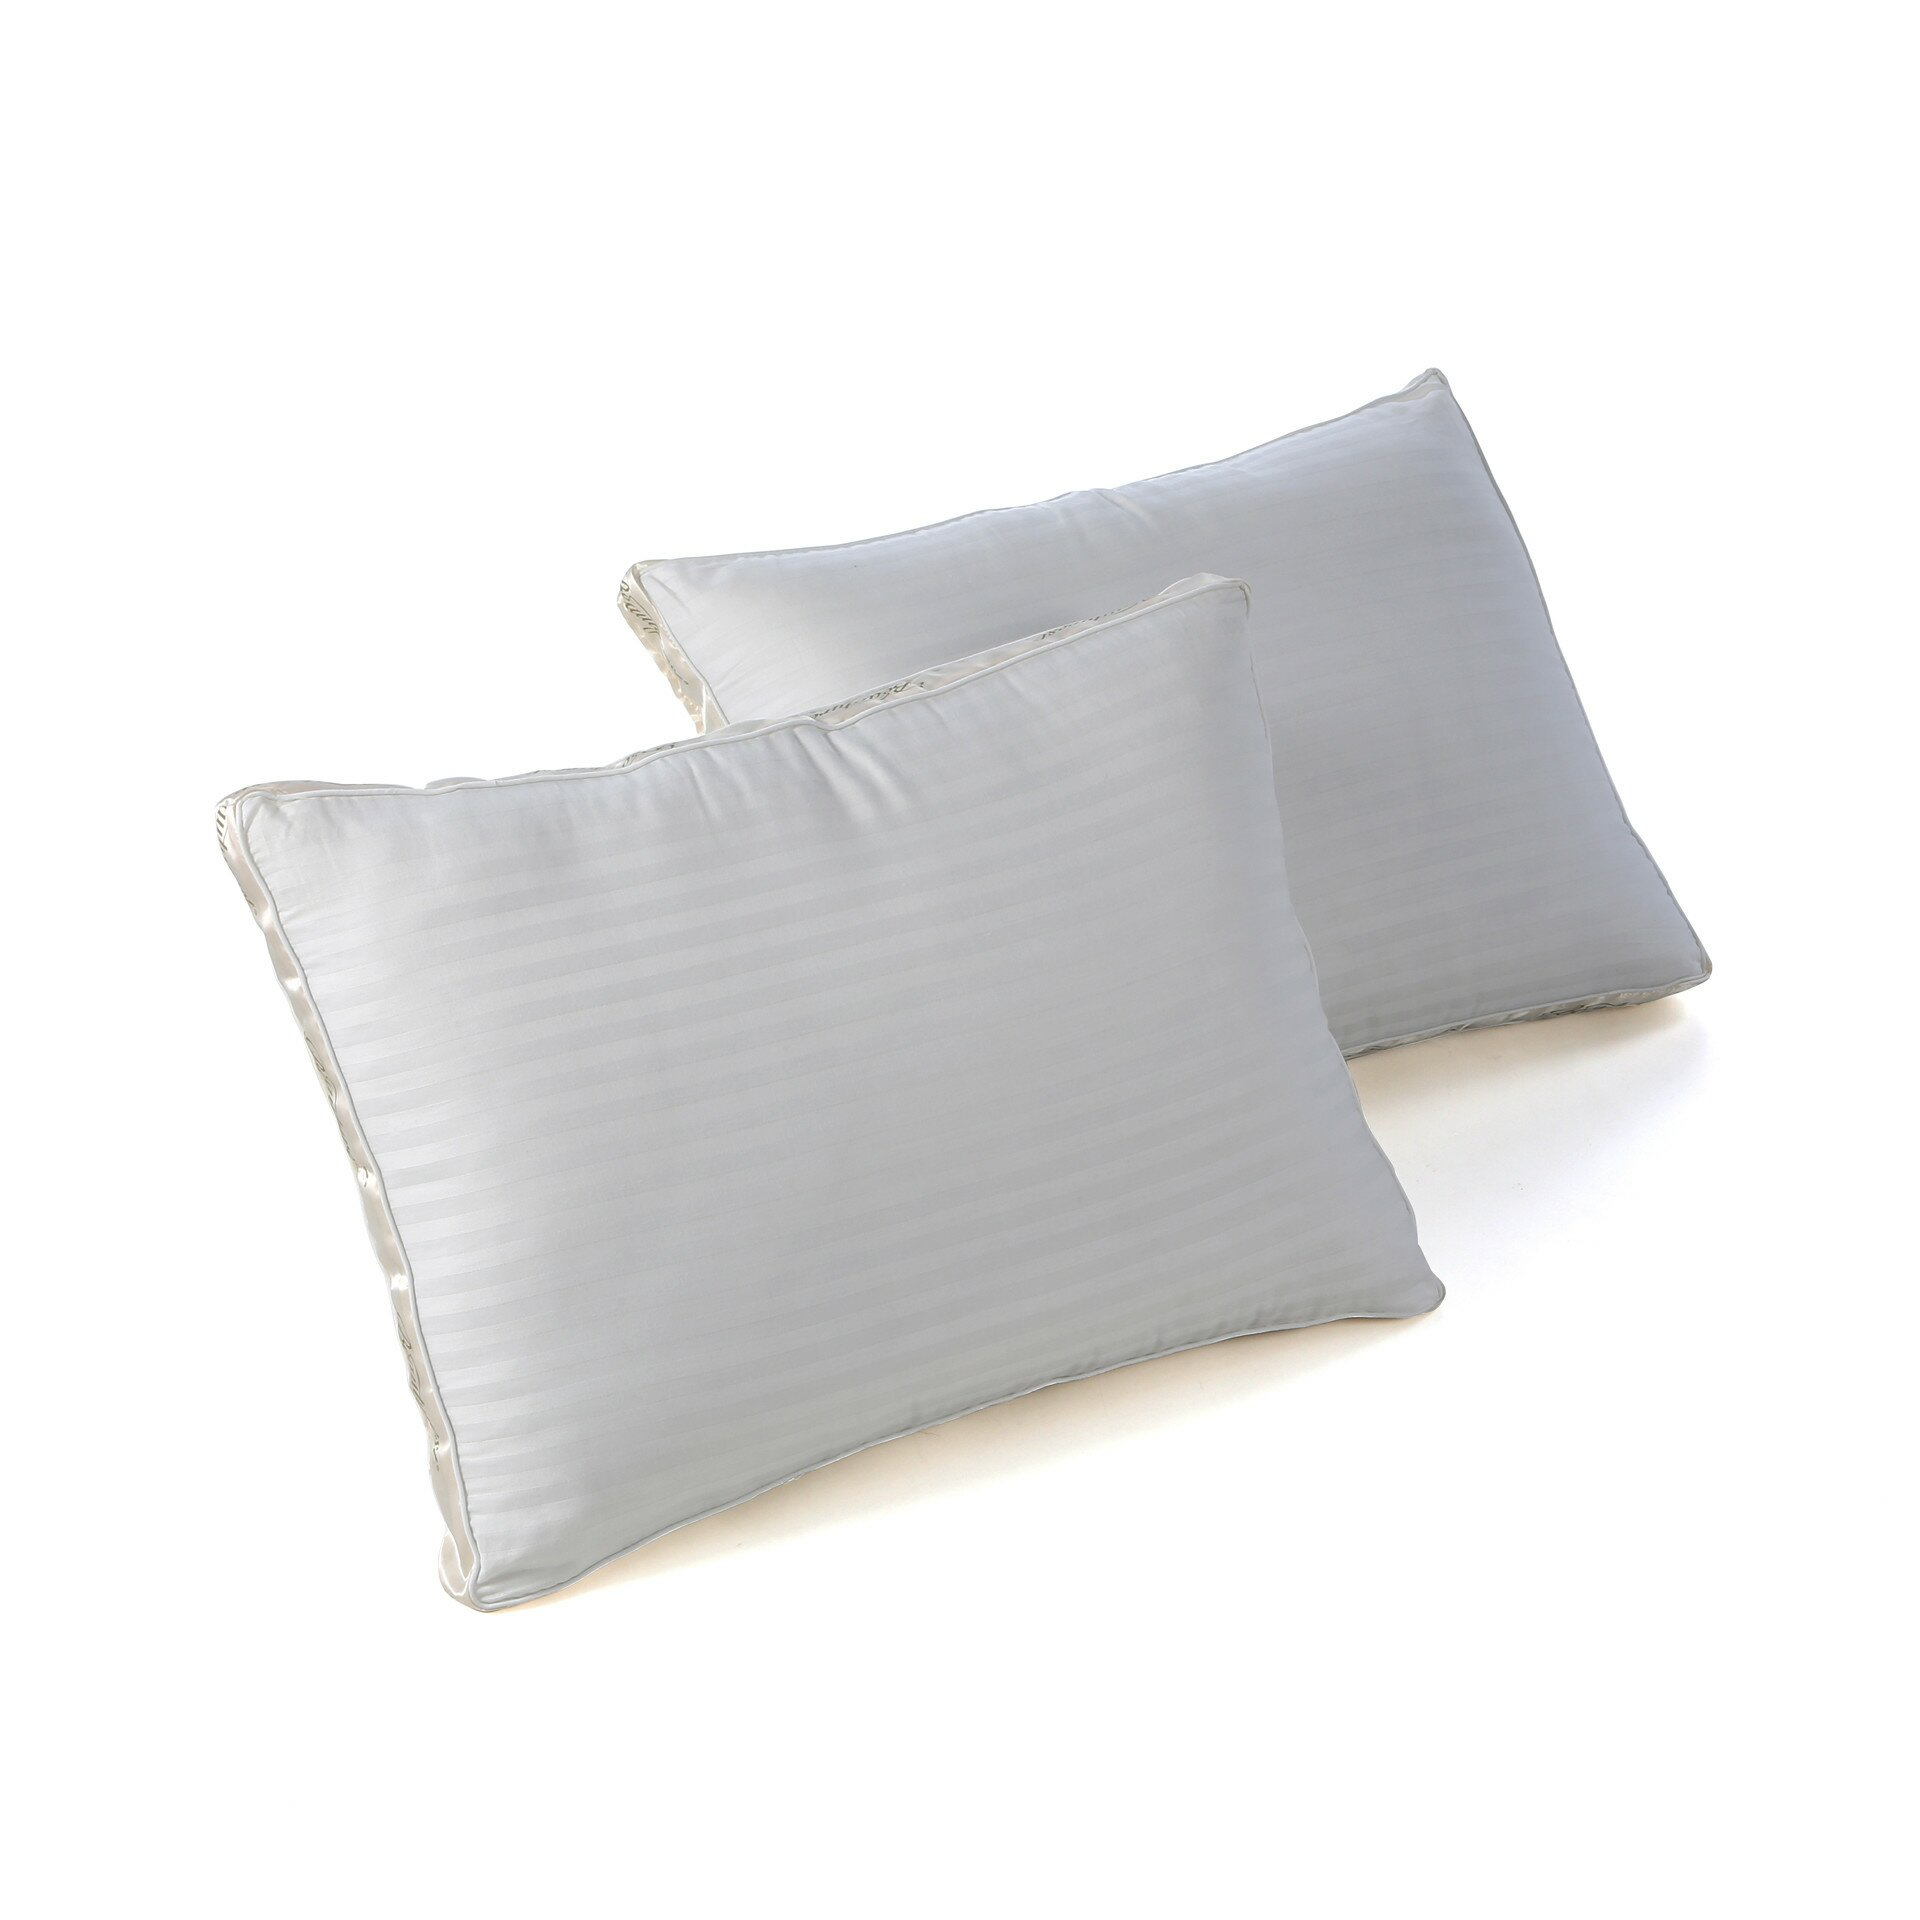 Simmons Beautyrest Pima Cotton Extra Firm Polyfill Pillow